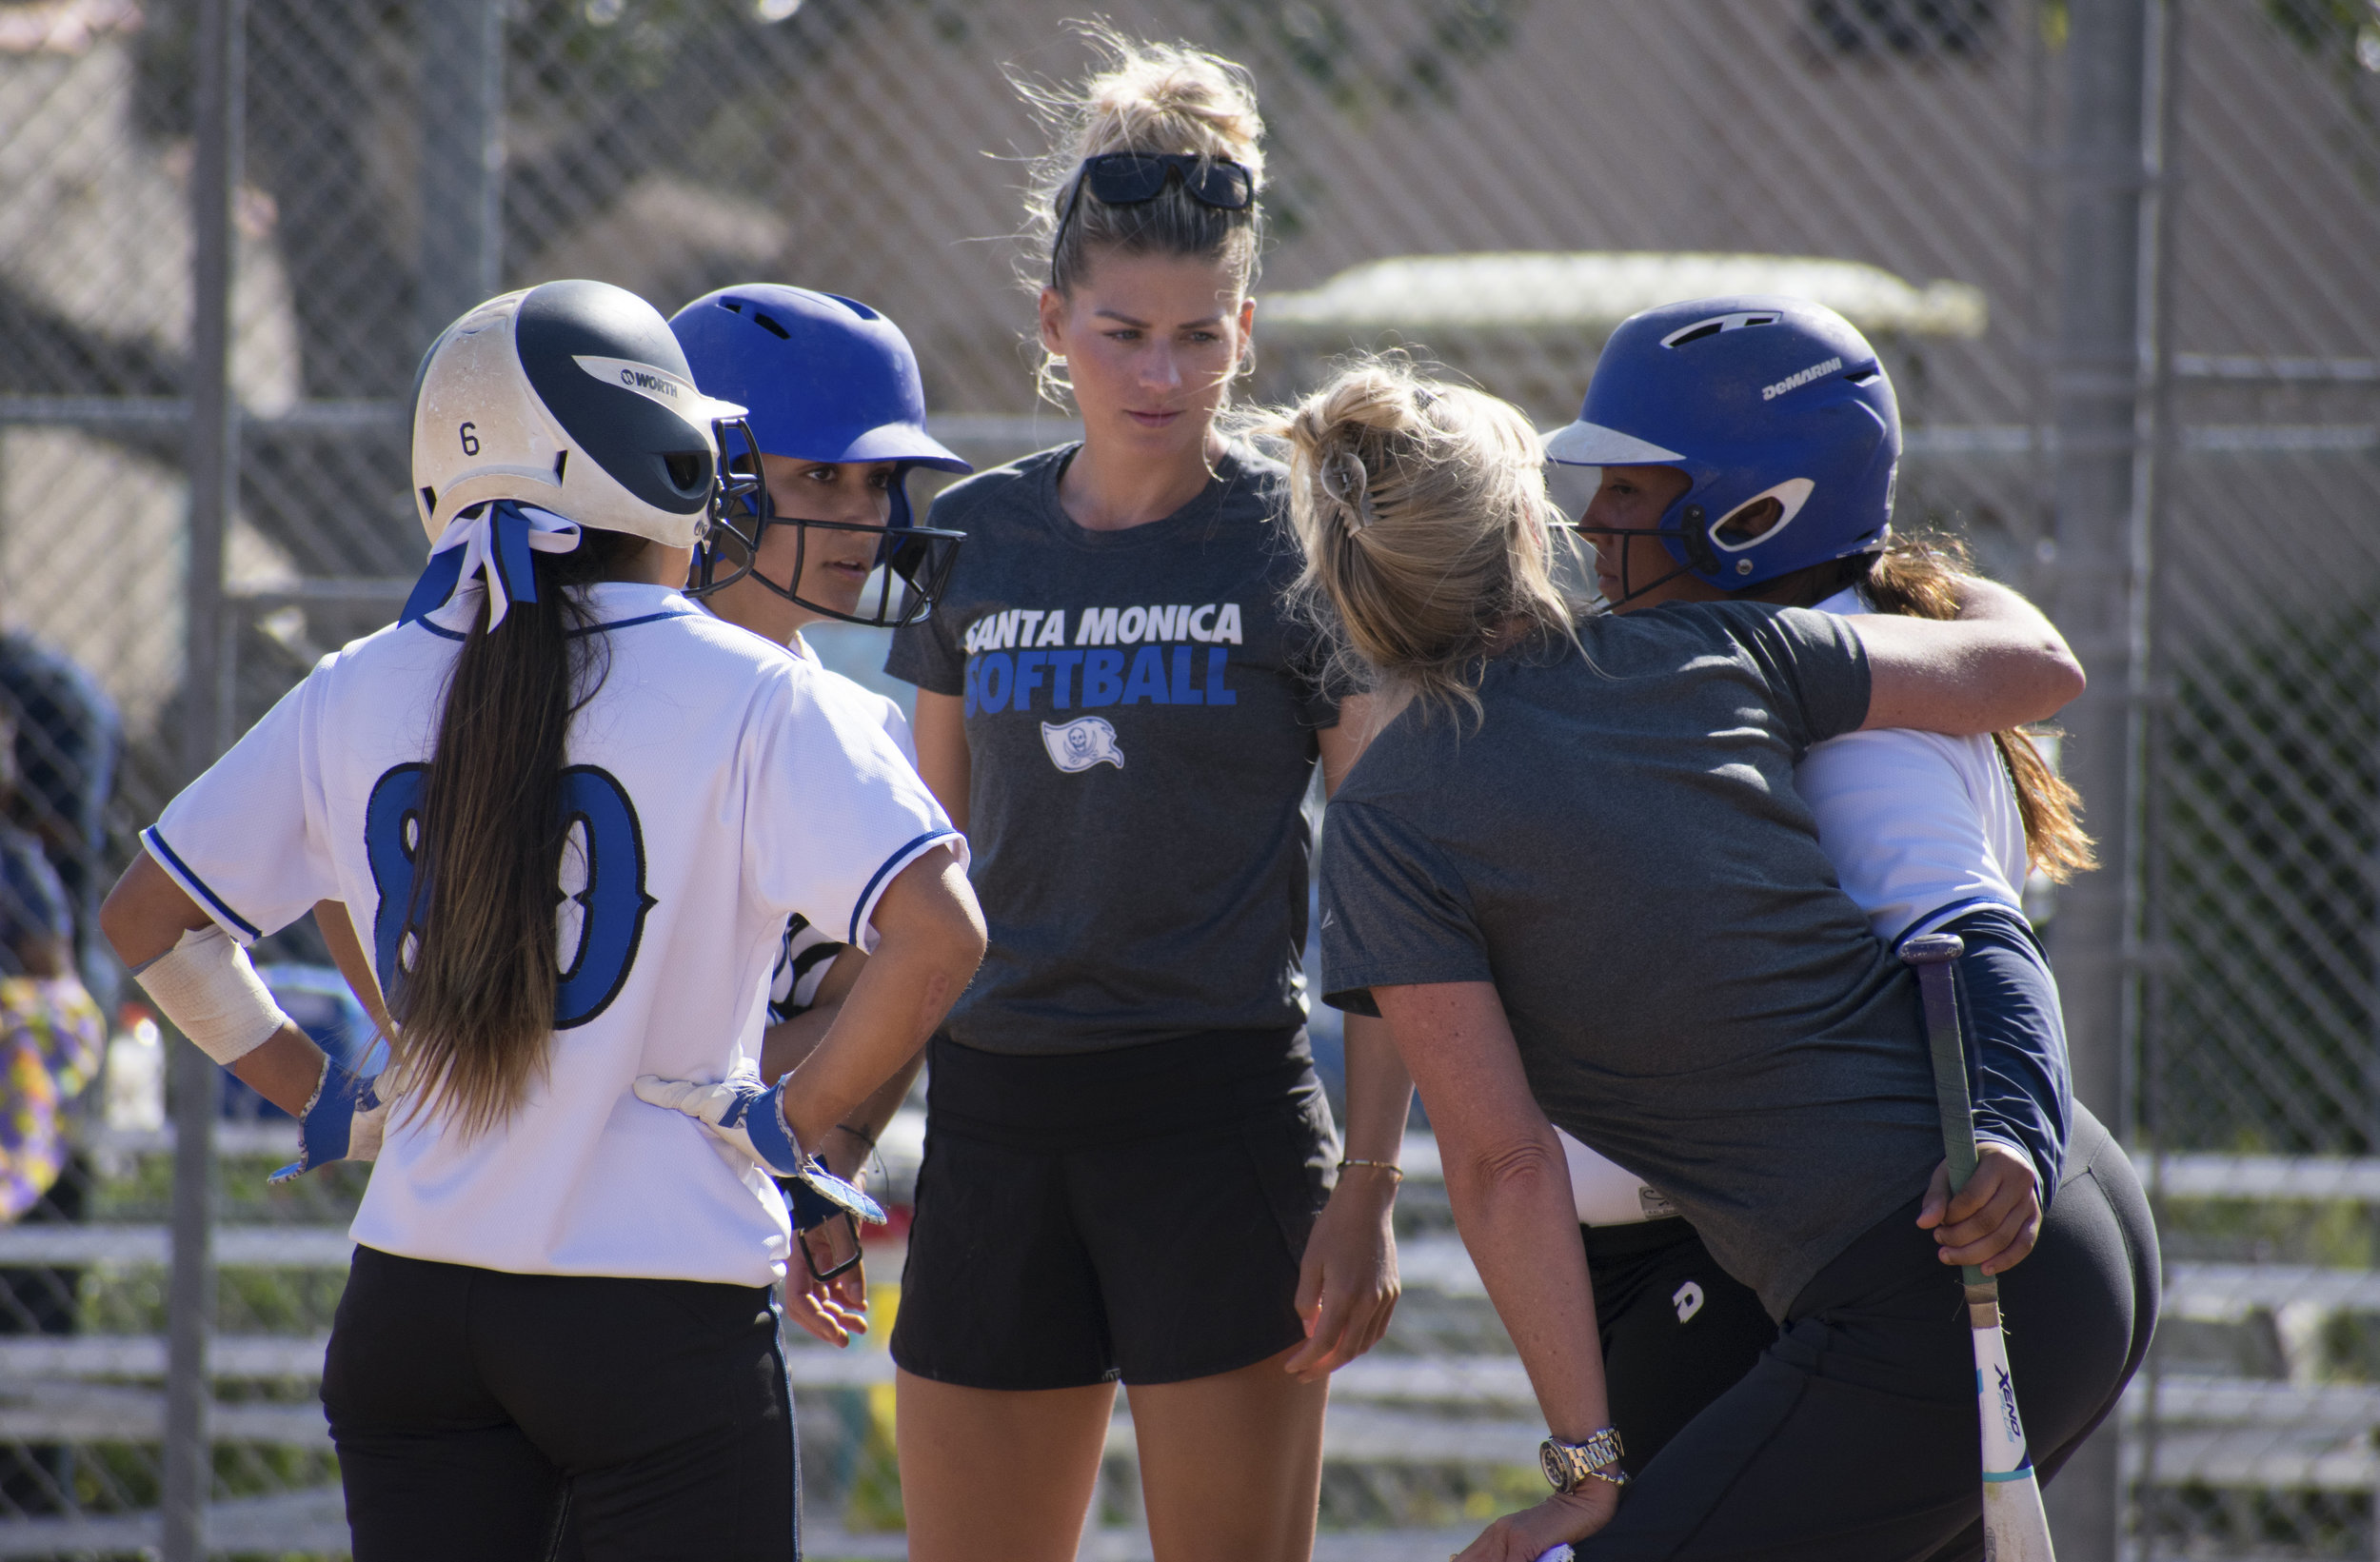 Assistant coach Sam Sheeley gives direction to the Santa Monica Corsairs during a softball game against the Cuesta College Cougars on Tuesday, April 4 at the John Adams Middle School Field in Santa Monica, California. It was a close 10-inning game, which ended in a 6-5 loss for the Corsairs. (Ethan Lauren/Corsair Photo)